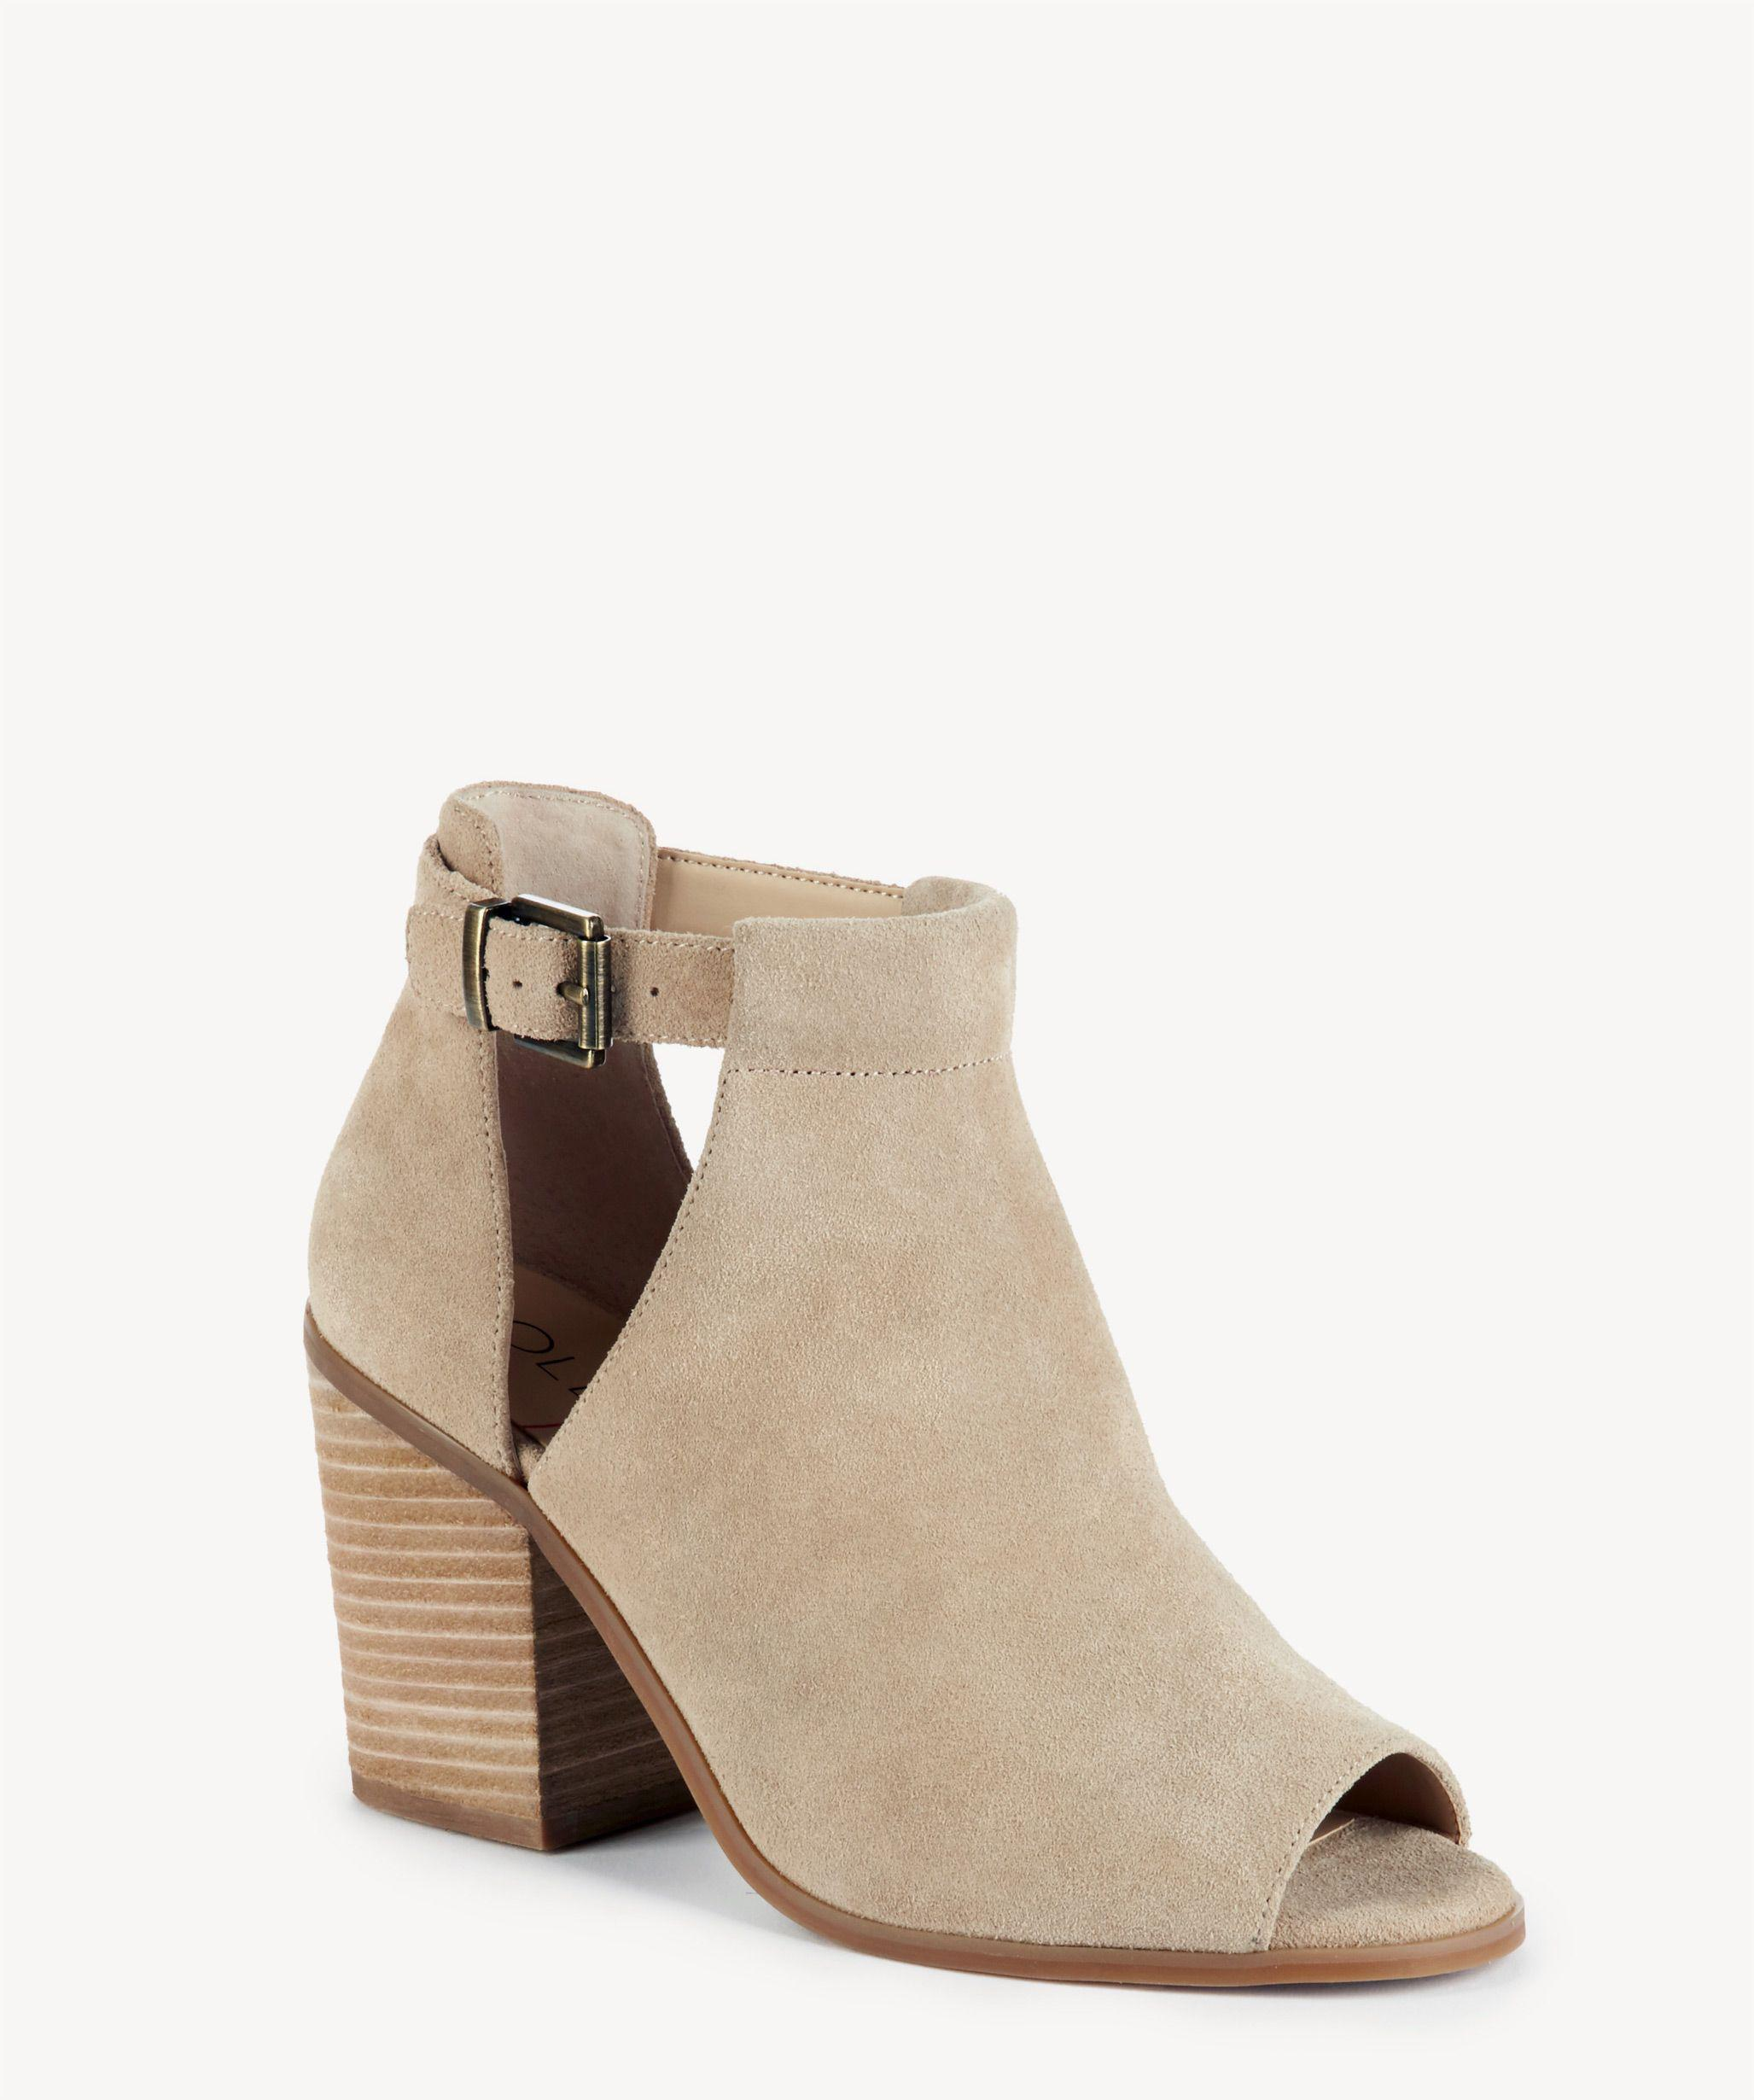 047894a901f Lyst - Sole Society Ferris Block Heel Sandal in Natural